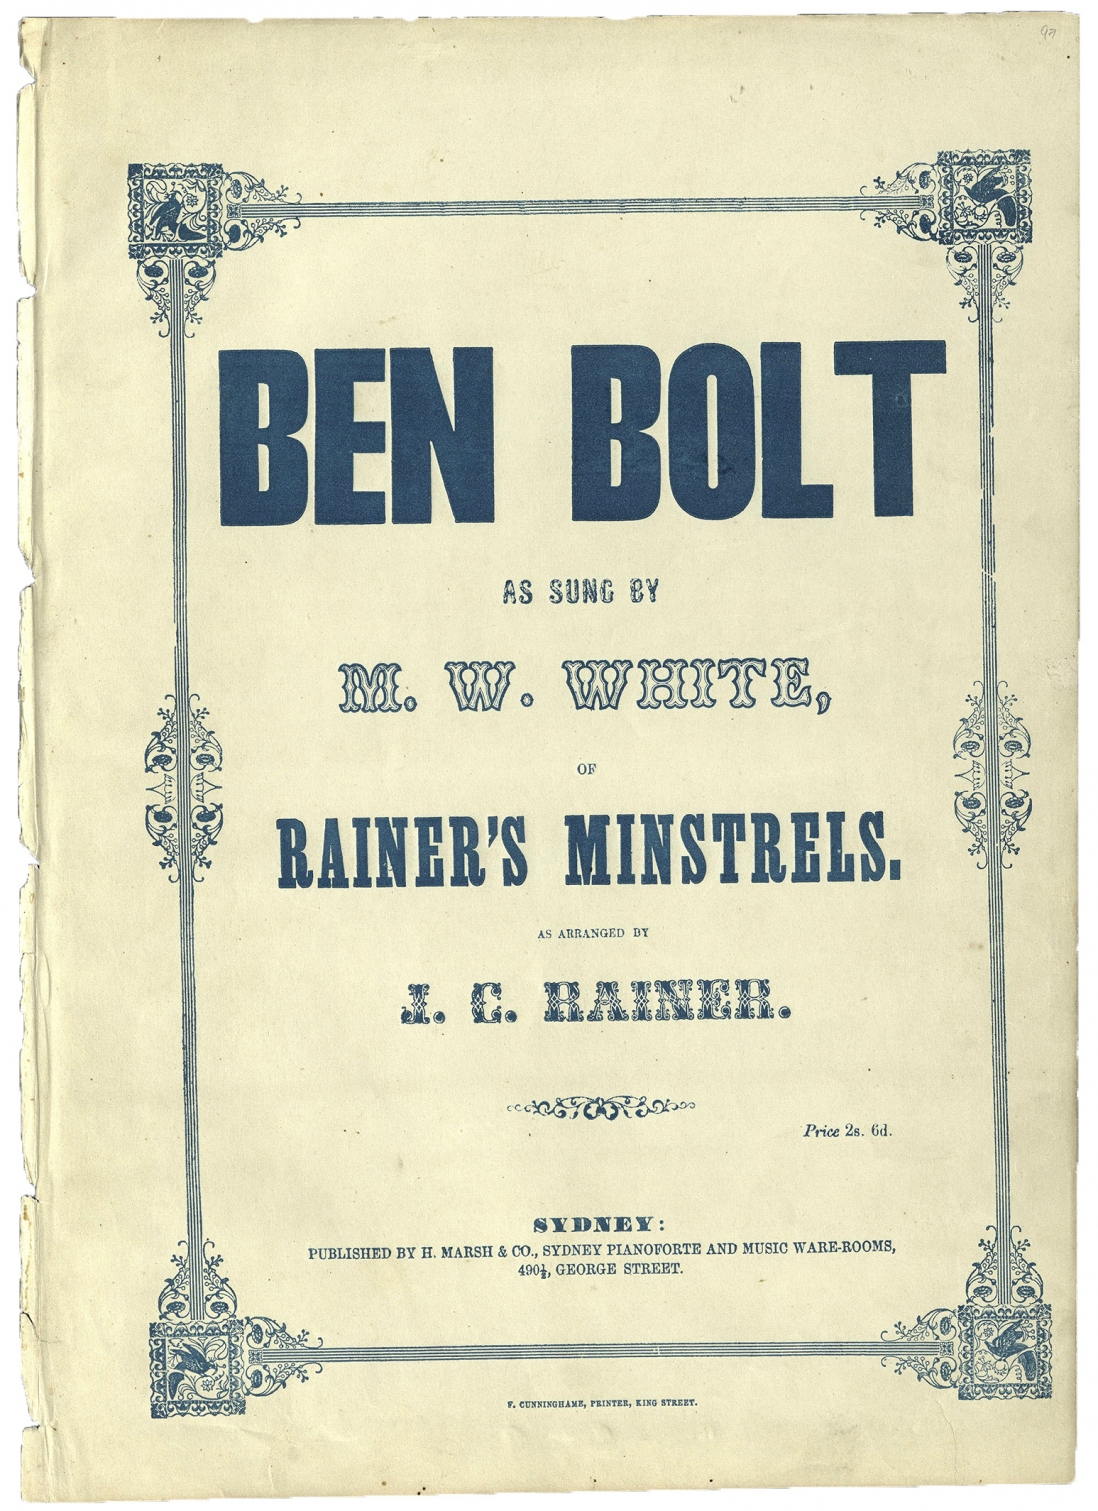 Ben Bolt as arranged by J C Rainer